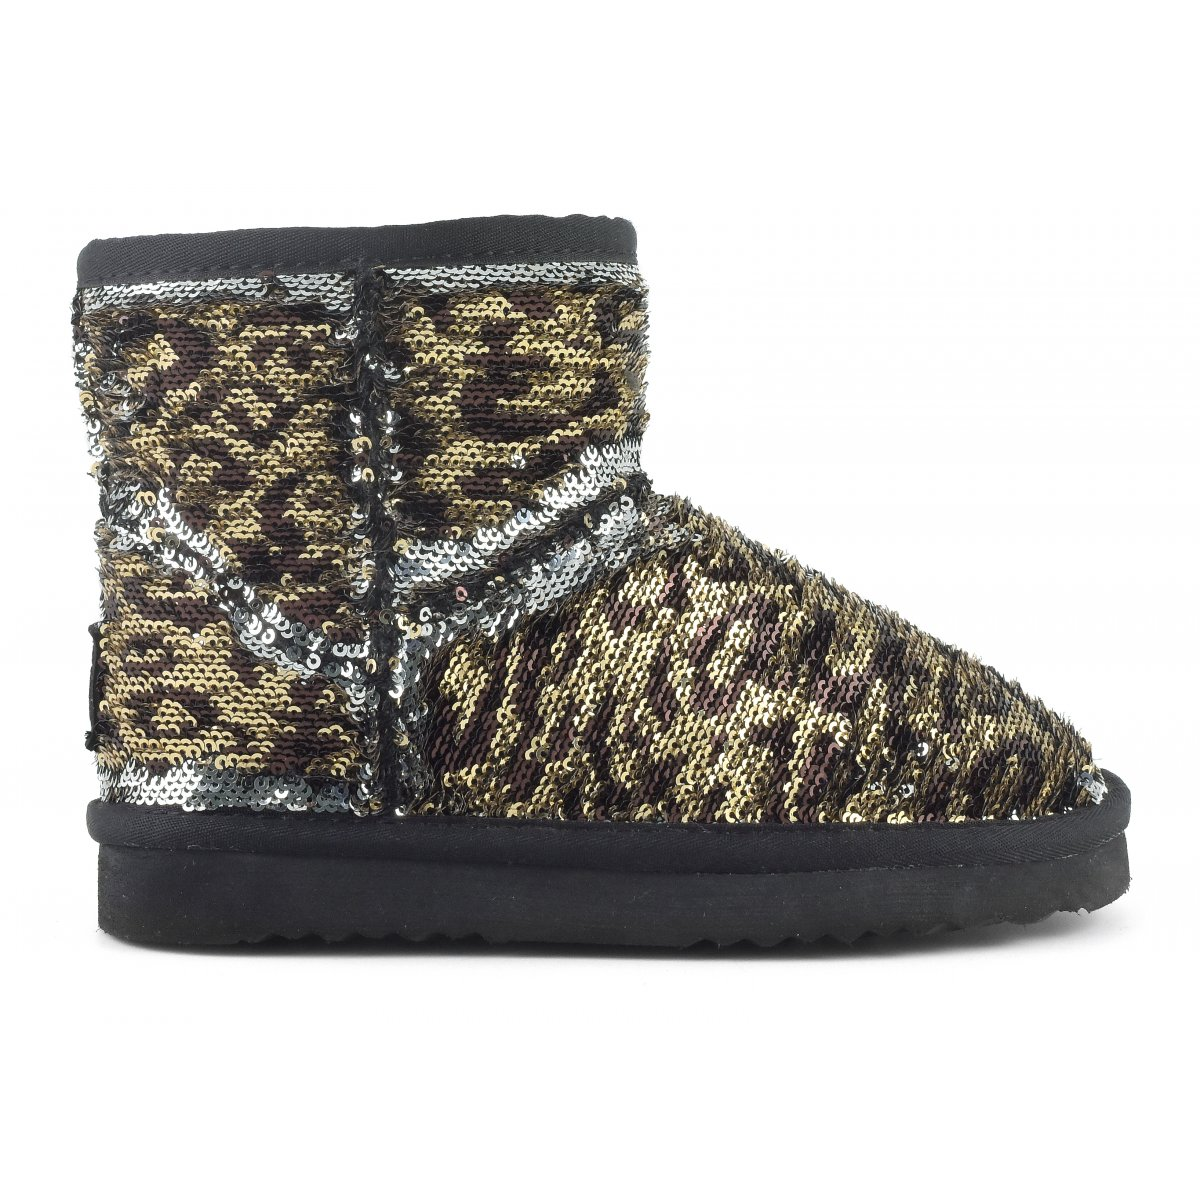 Shop Ugg Girl's Slippers up to 50% Off | DealDoodle